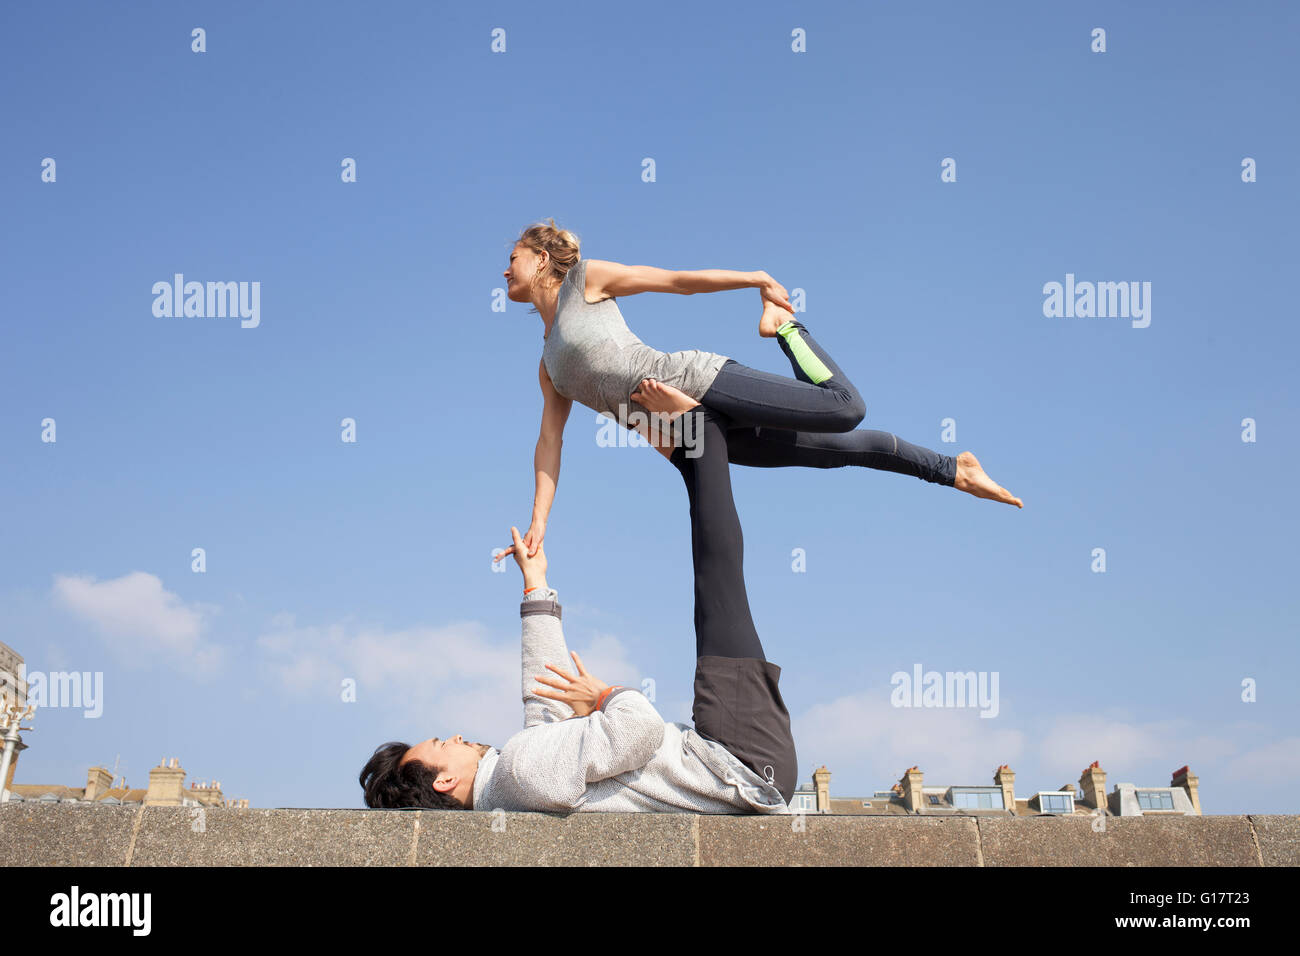 Man and woman practicing acrobatic yoga on wall Stock Photo